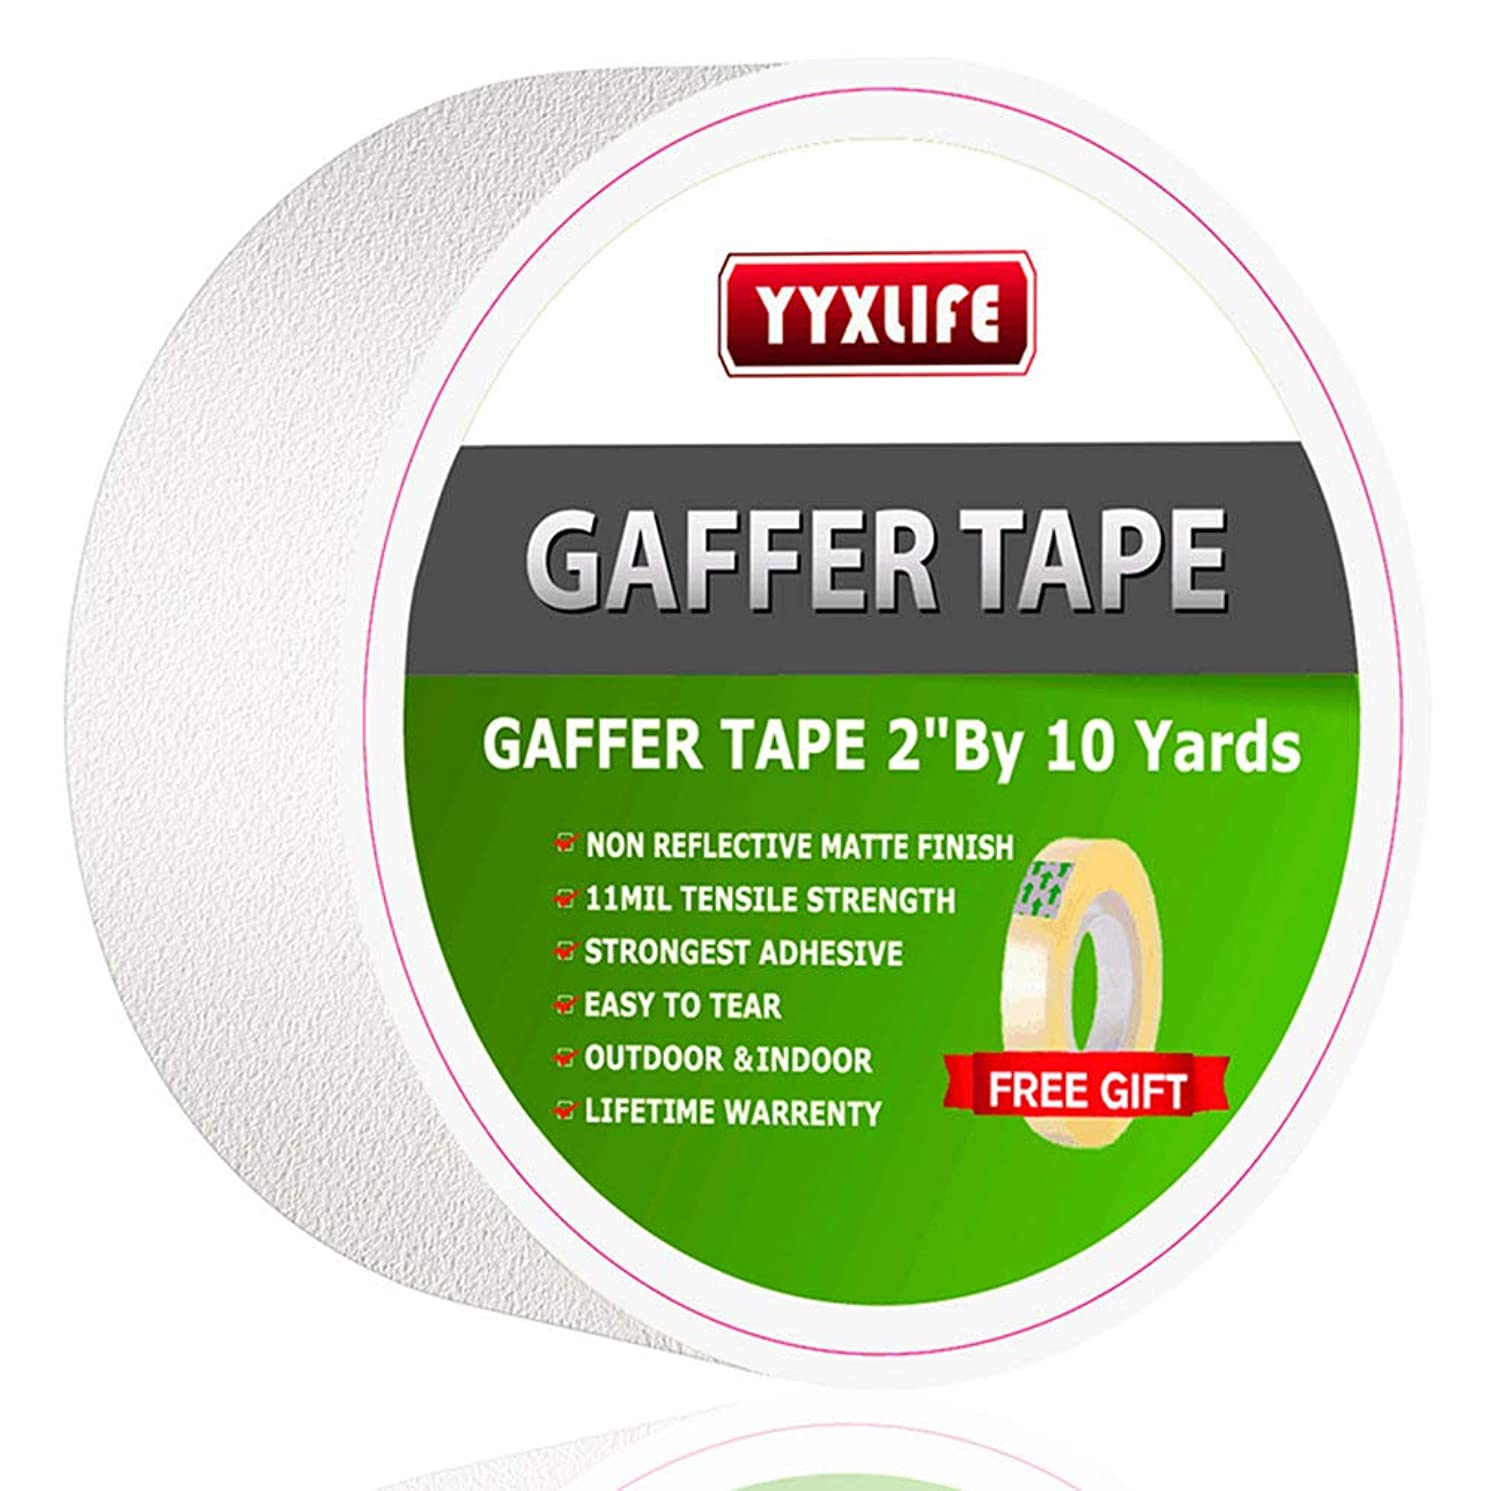 Premium Grade Gaffer Tape, Non-Reflective Matte Gaff Main Stage Tape,Electrical Tape,Duct Tape for Photographers,Waterproof Heavy Duty Gaffers Tape (2 Inch X 10 Yards, White)